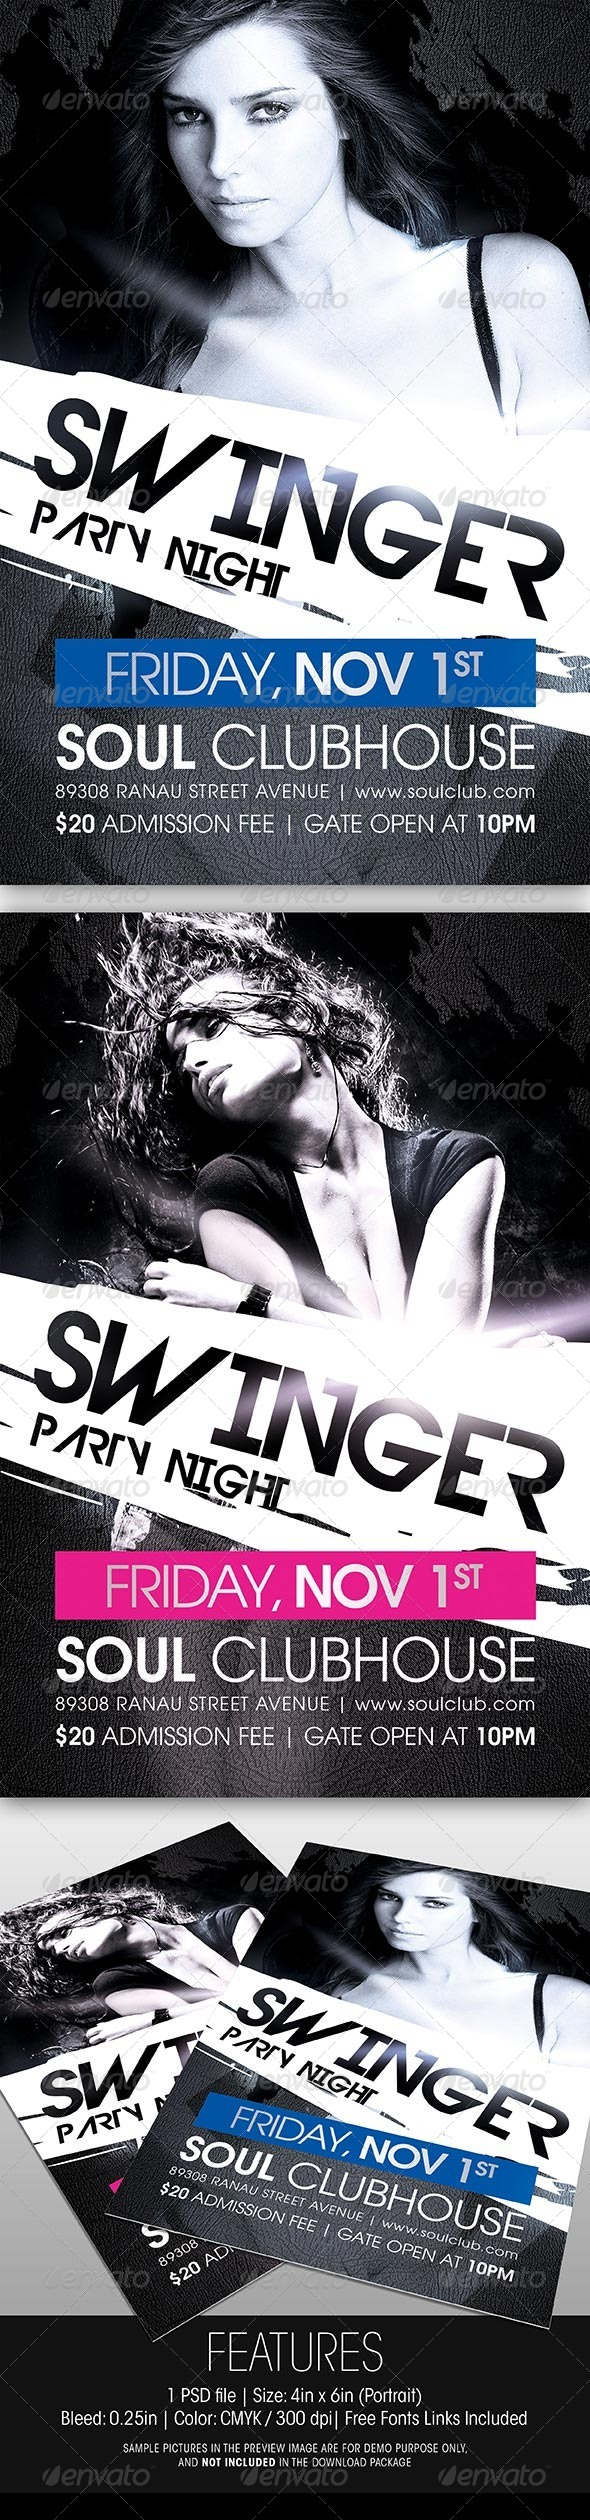 GraphicRiver Swinger Party Flyer 5672848